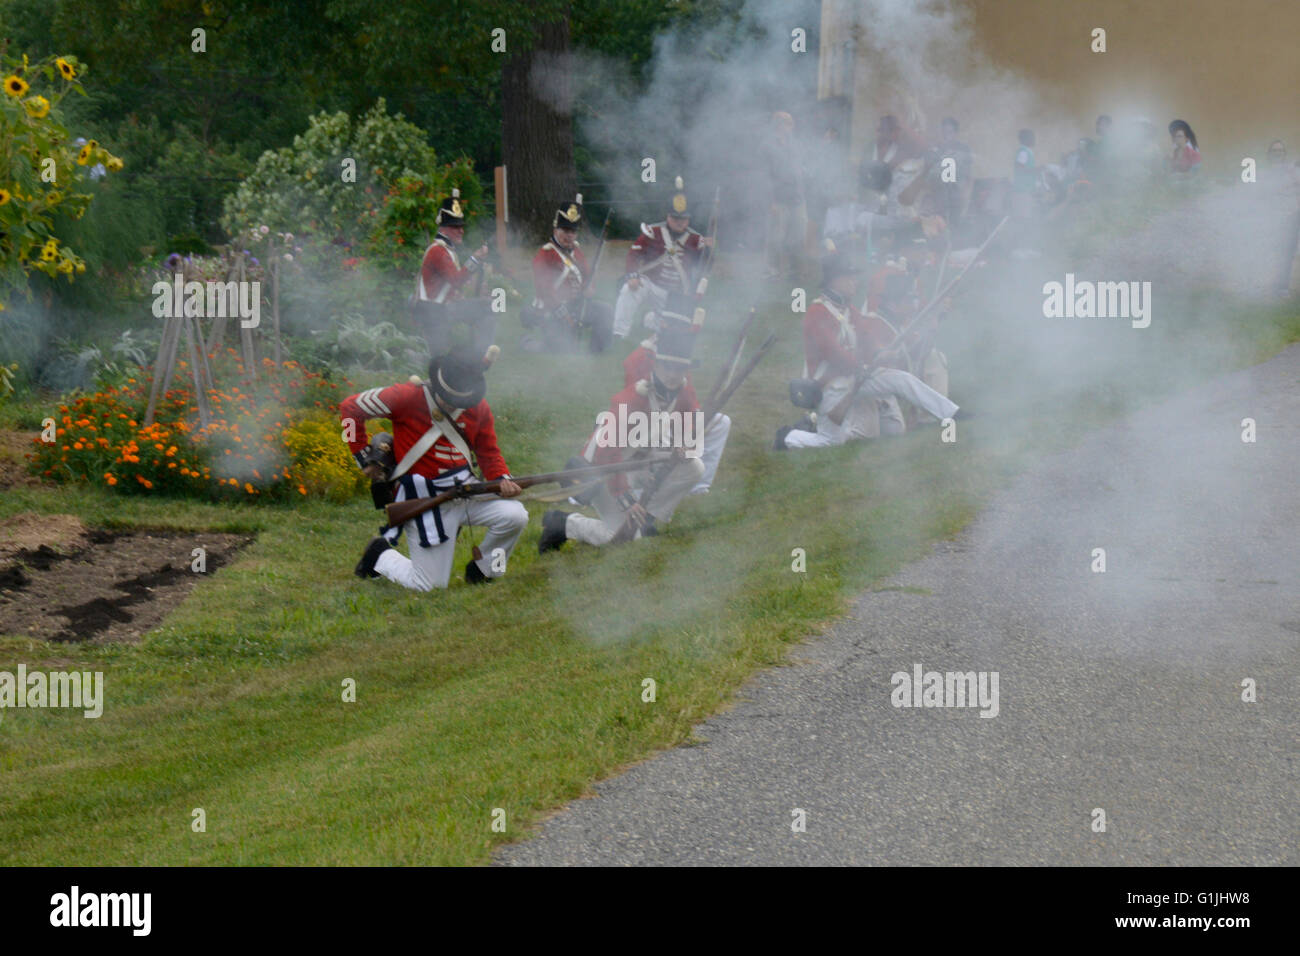 British soldiers  in the reenactment of the Battle of Bladensburg show in Riverdale, Park, Md - Stock Image